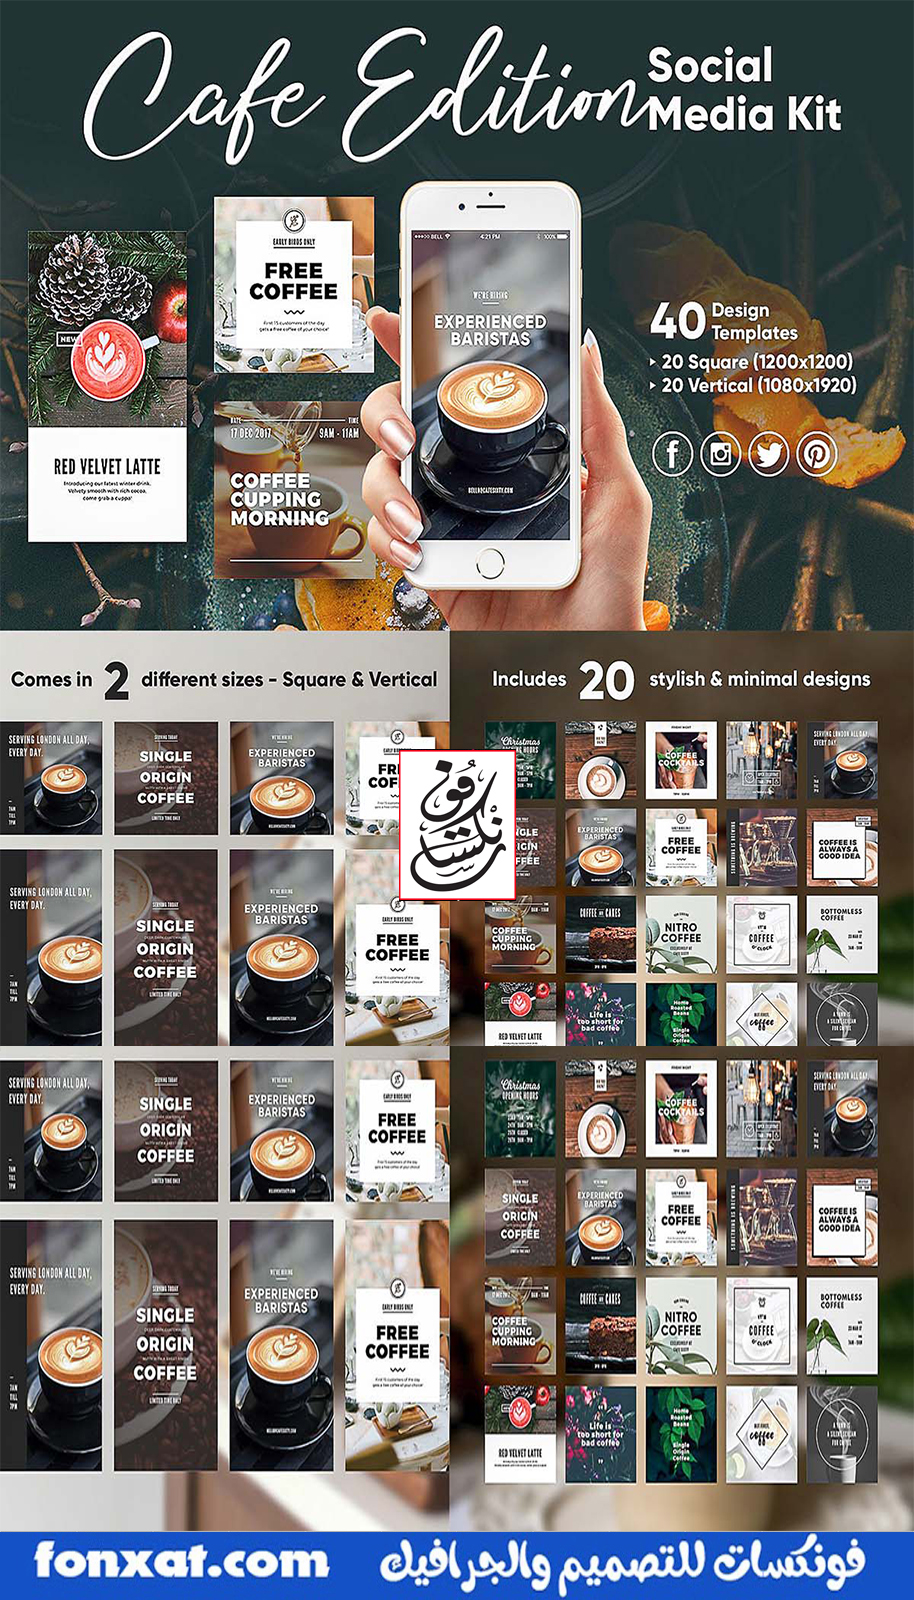 Download 40 coffee designs suitable for coffee and coffee posters promotional banners